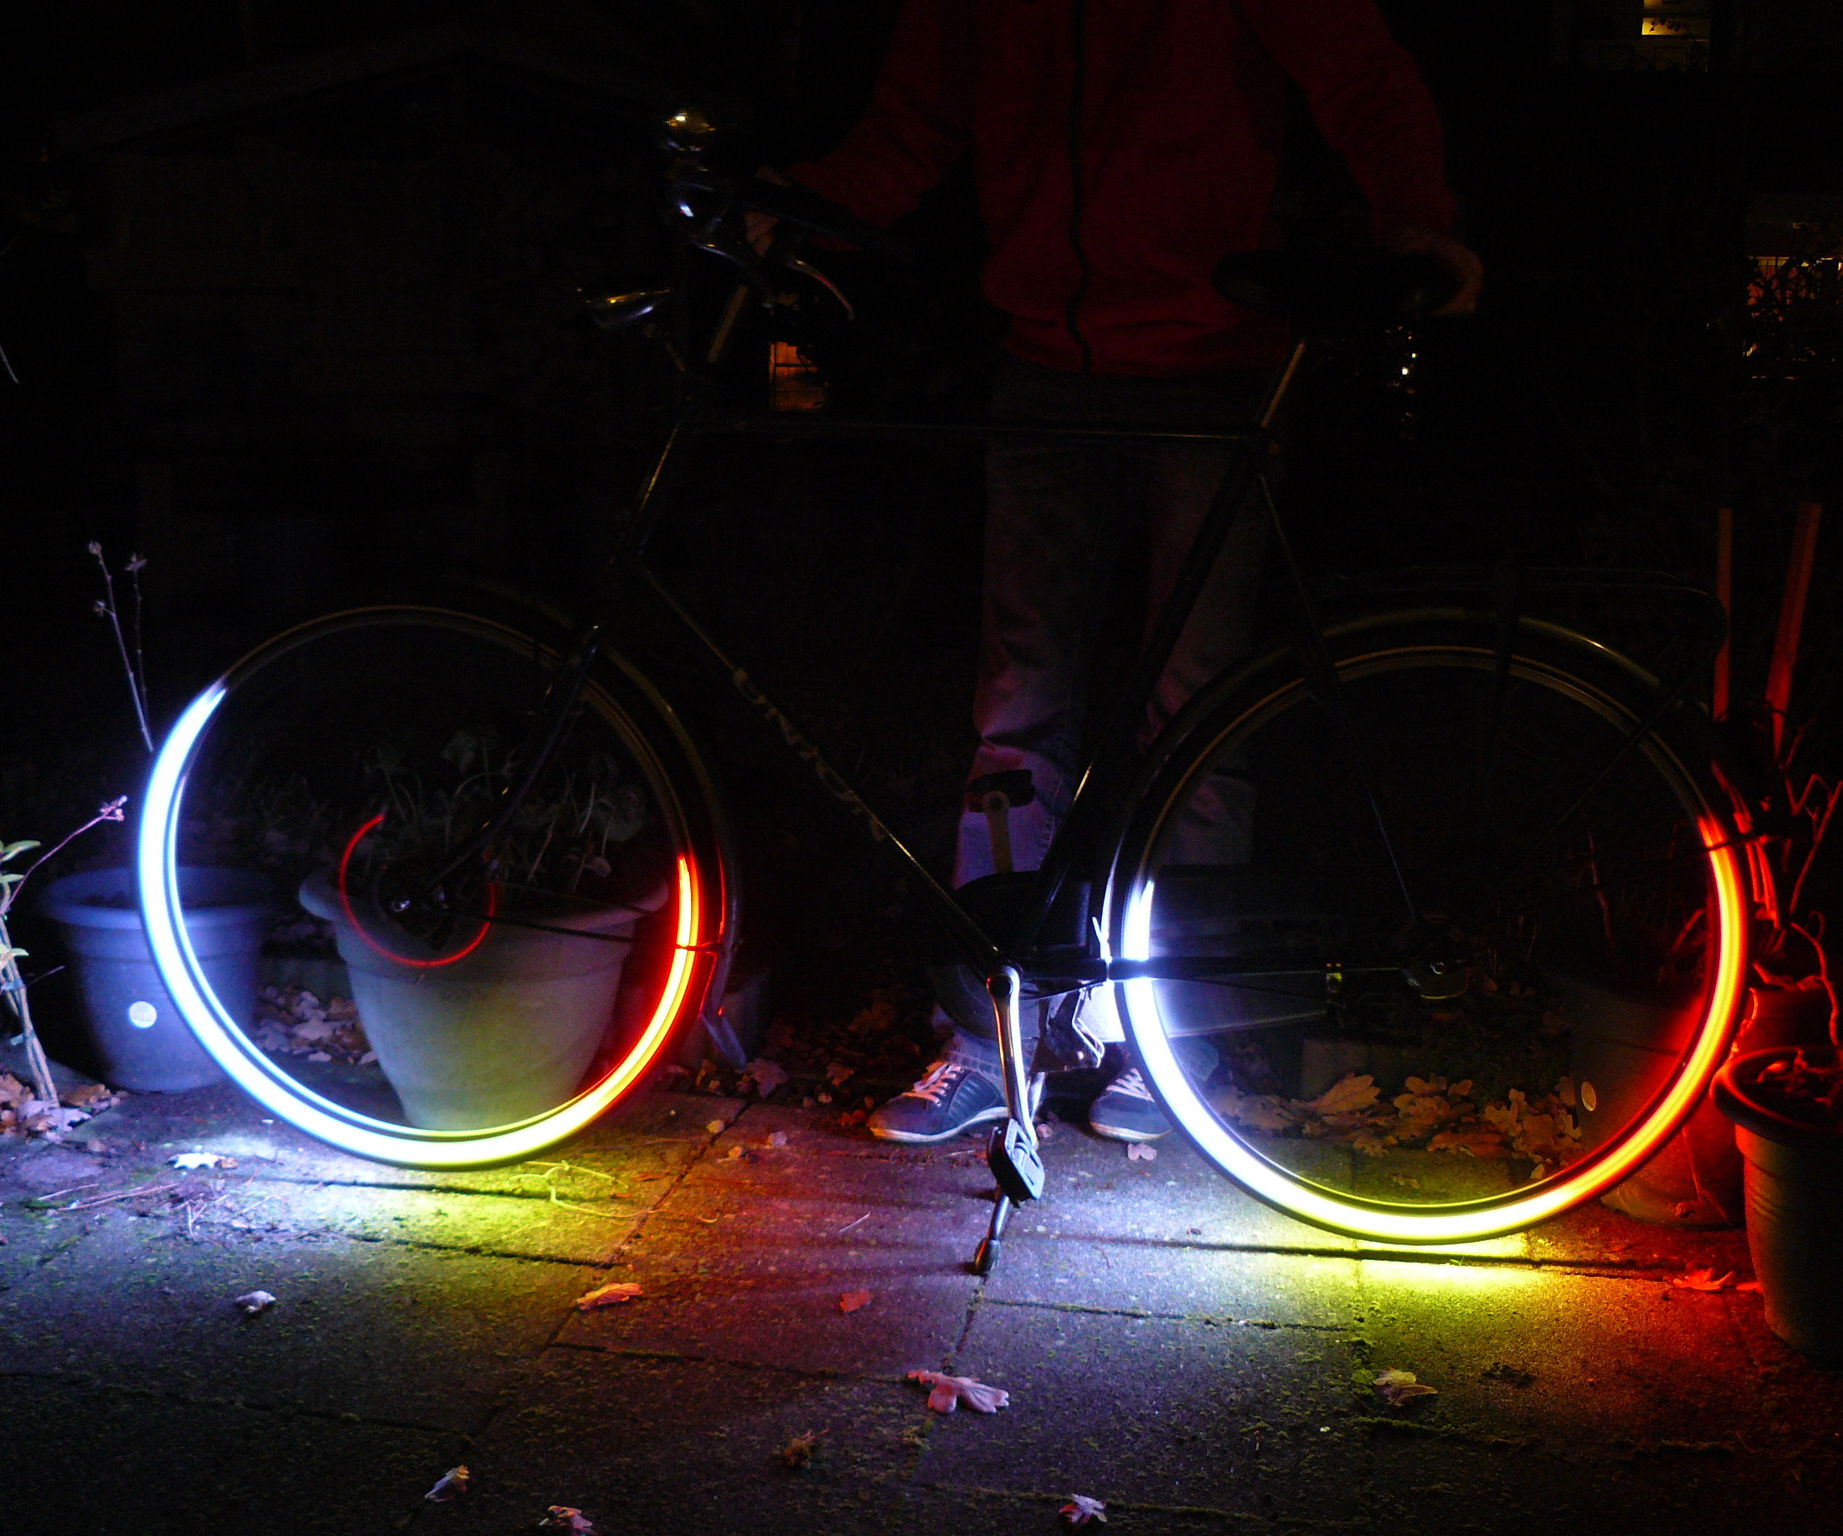 RGB Bicycle Rim Lights